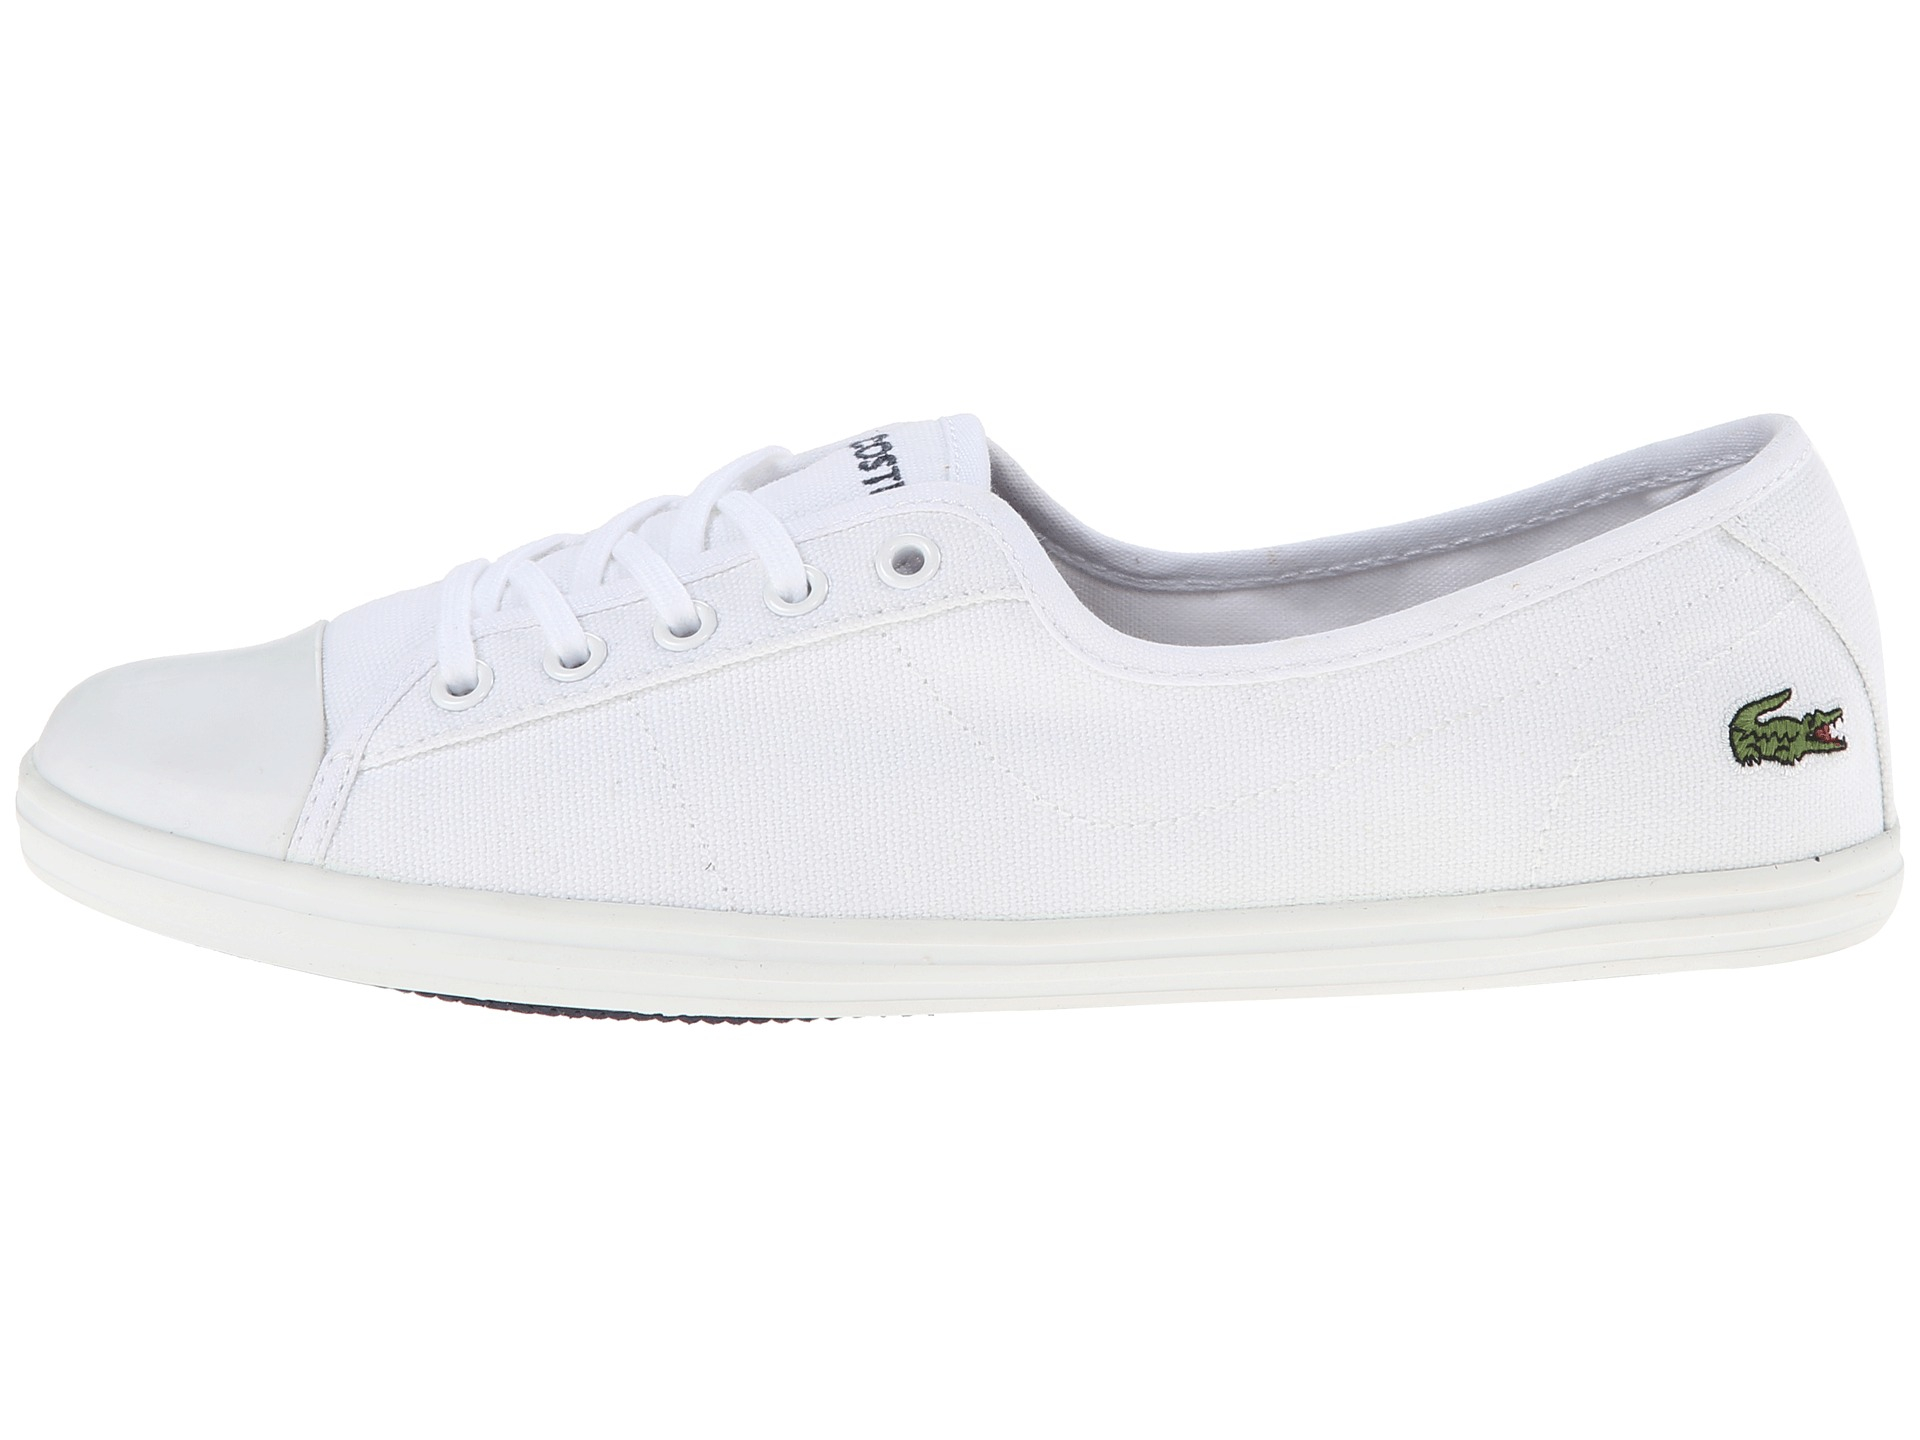 Lacoste Ziane Lcr Lacoste- White/White sneakers